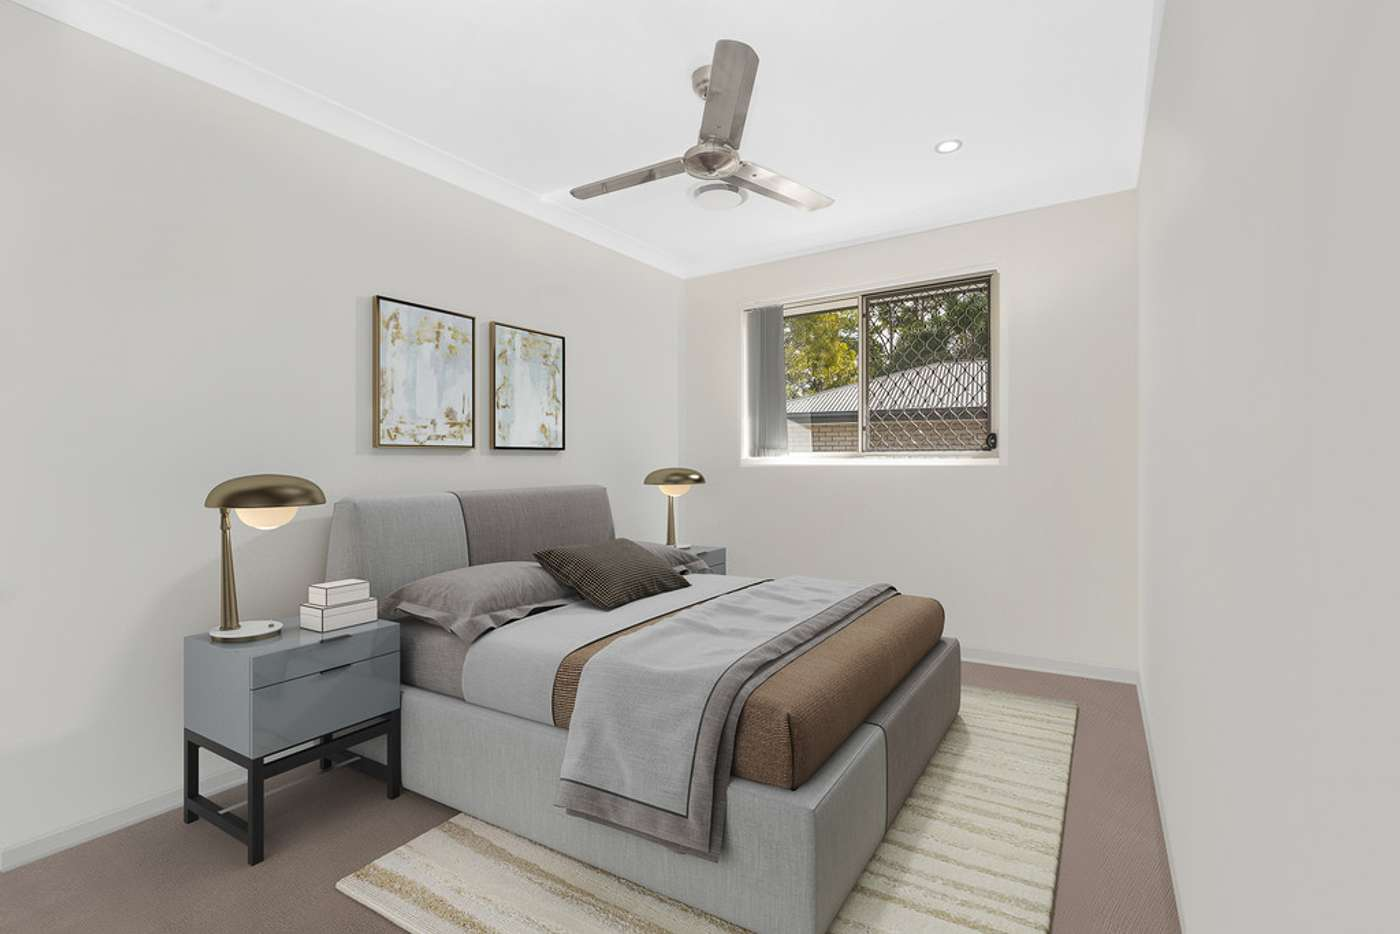 Sixth view of Homely house listing, 7/62 Station Road, Burpengary QLD 4505